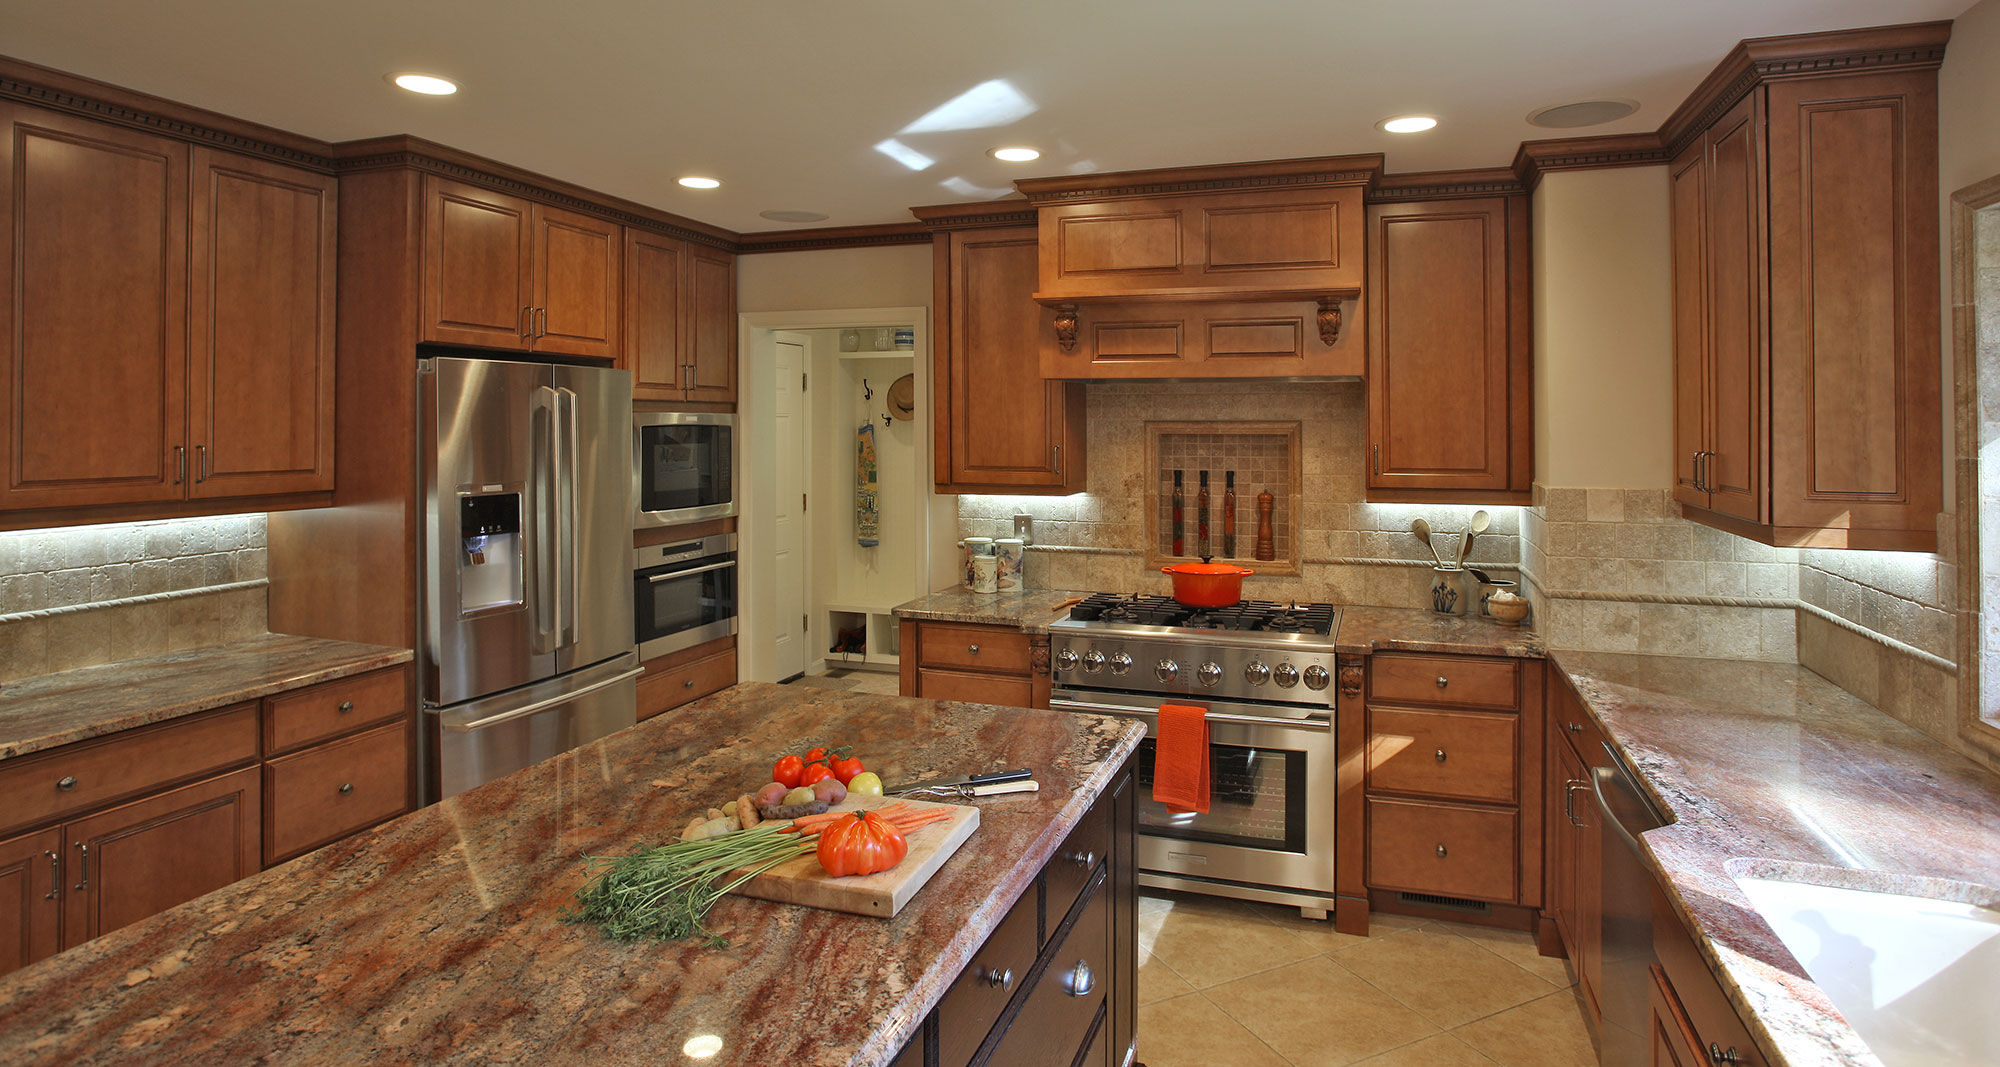 Kitchen Remodeling Maryland Creative Remodelling New Kitchen And Bath Remodeling Serving Northern Virginia Maryland . Design Inspiration